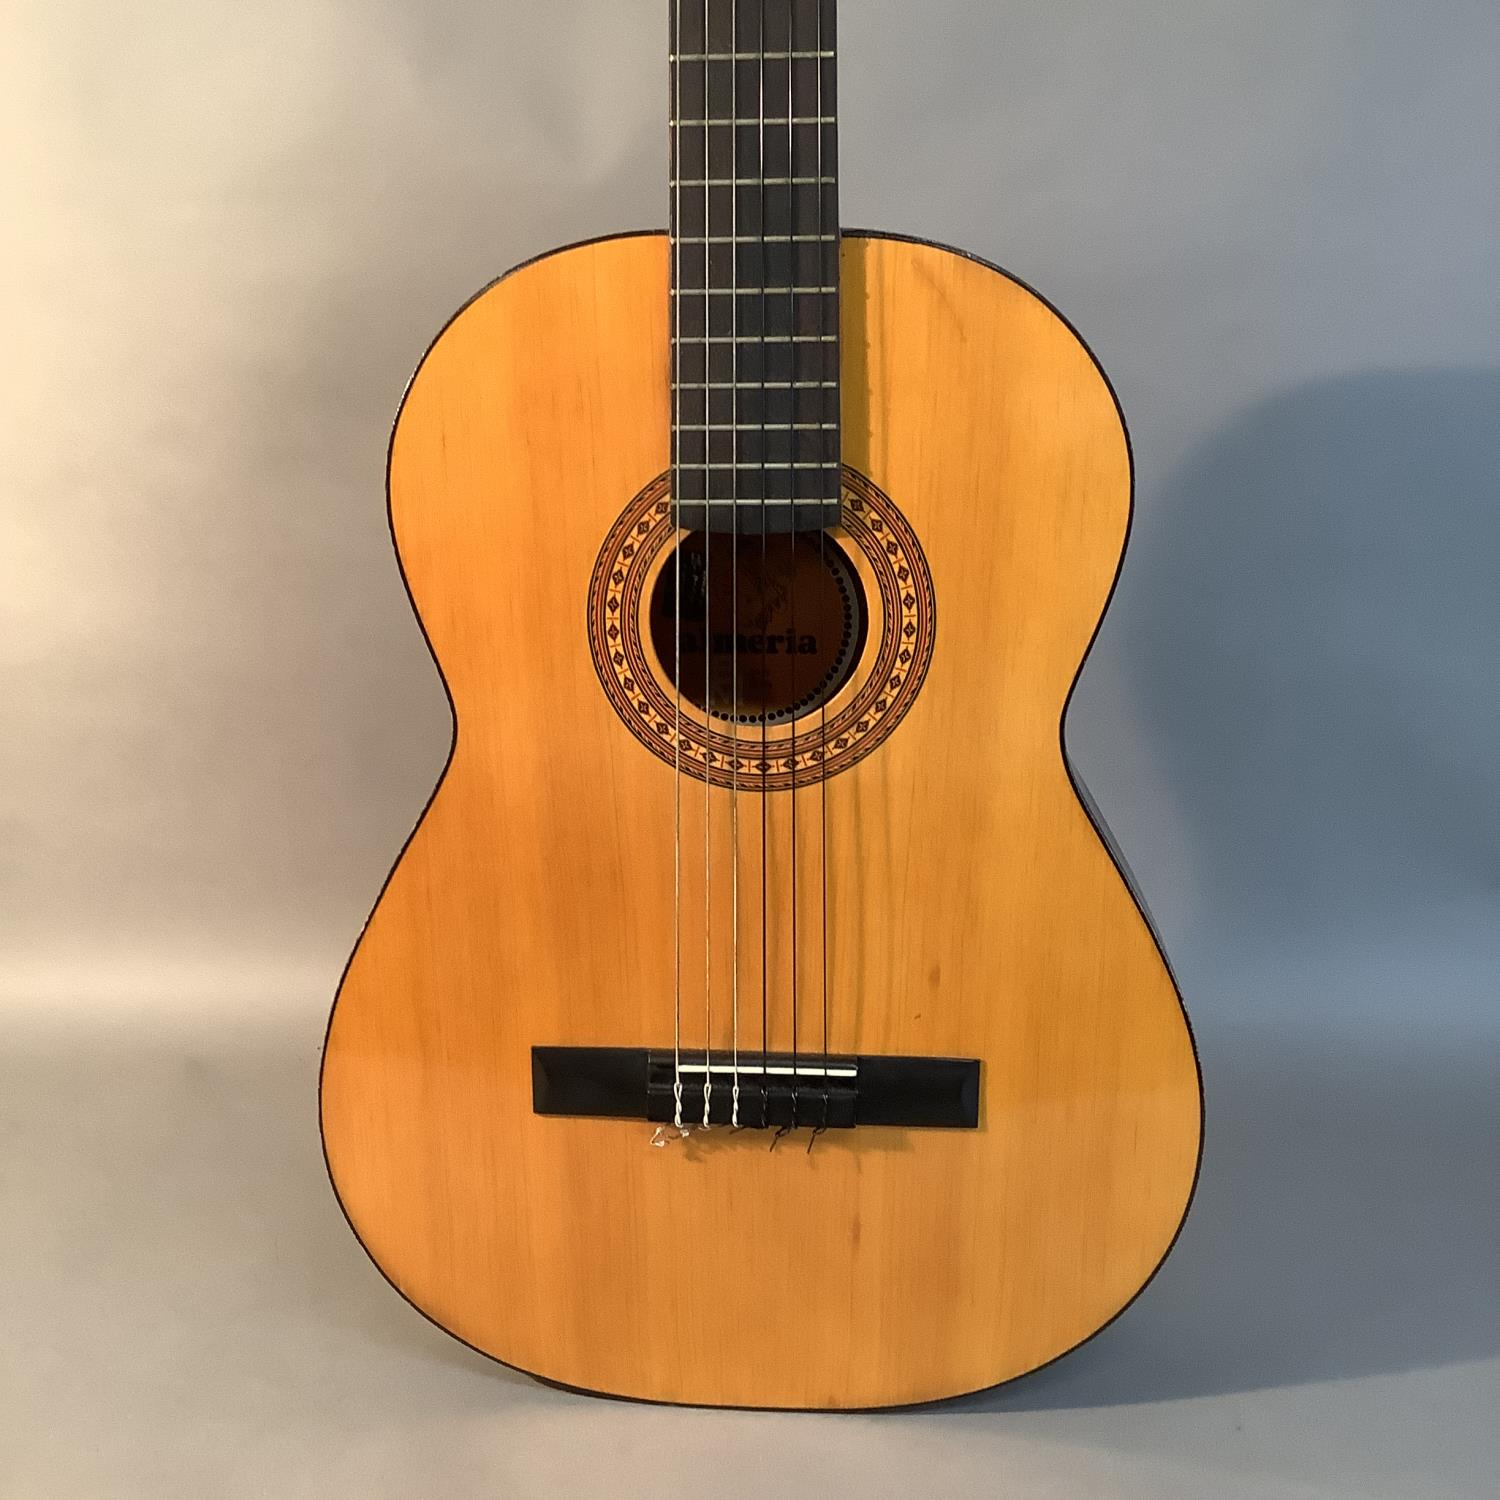 An Admira Almeria classical guitar with Oregon pine top and Sapelli back, ebonized finger plate - Image 6 of 6